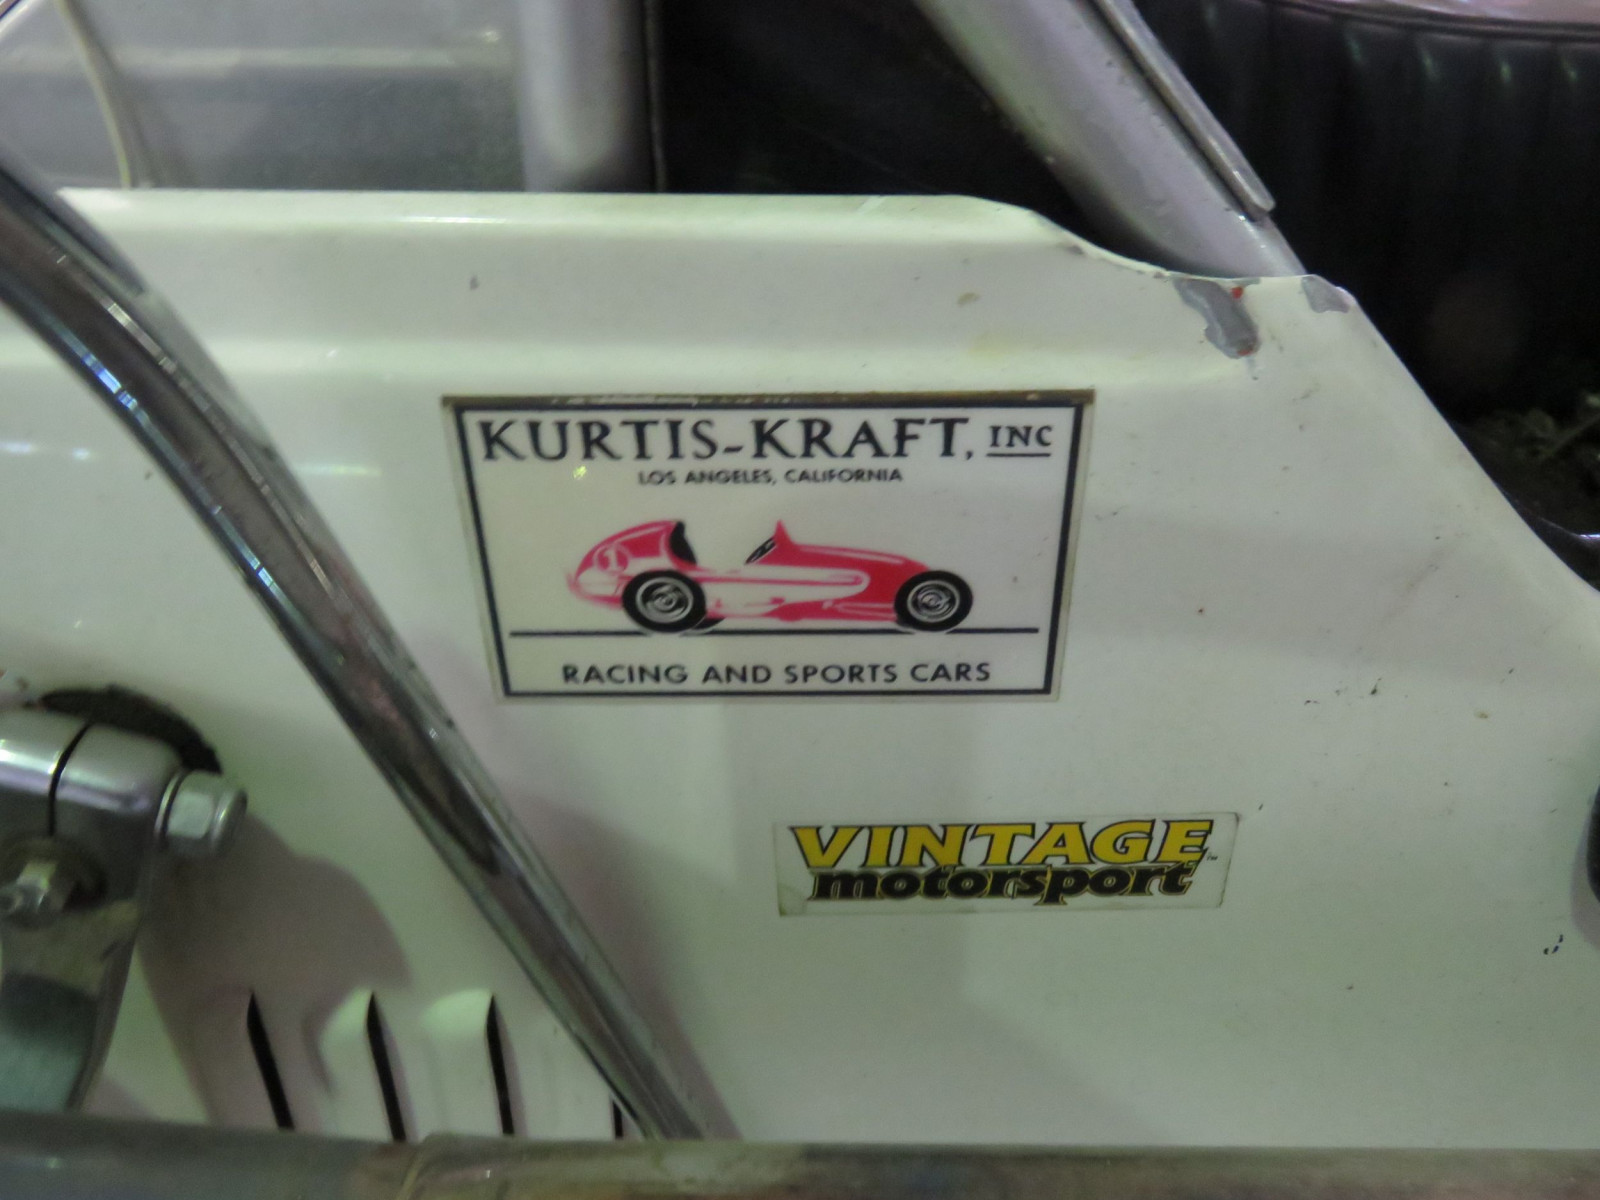 Rare 1947 Kurtis Kraft-Chimnery Midget Racecar and Trailer - Image 15